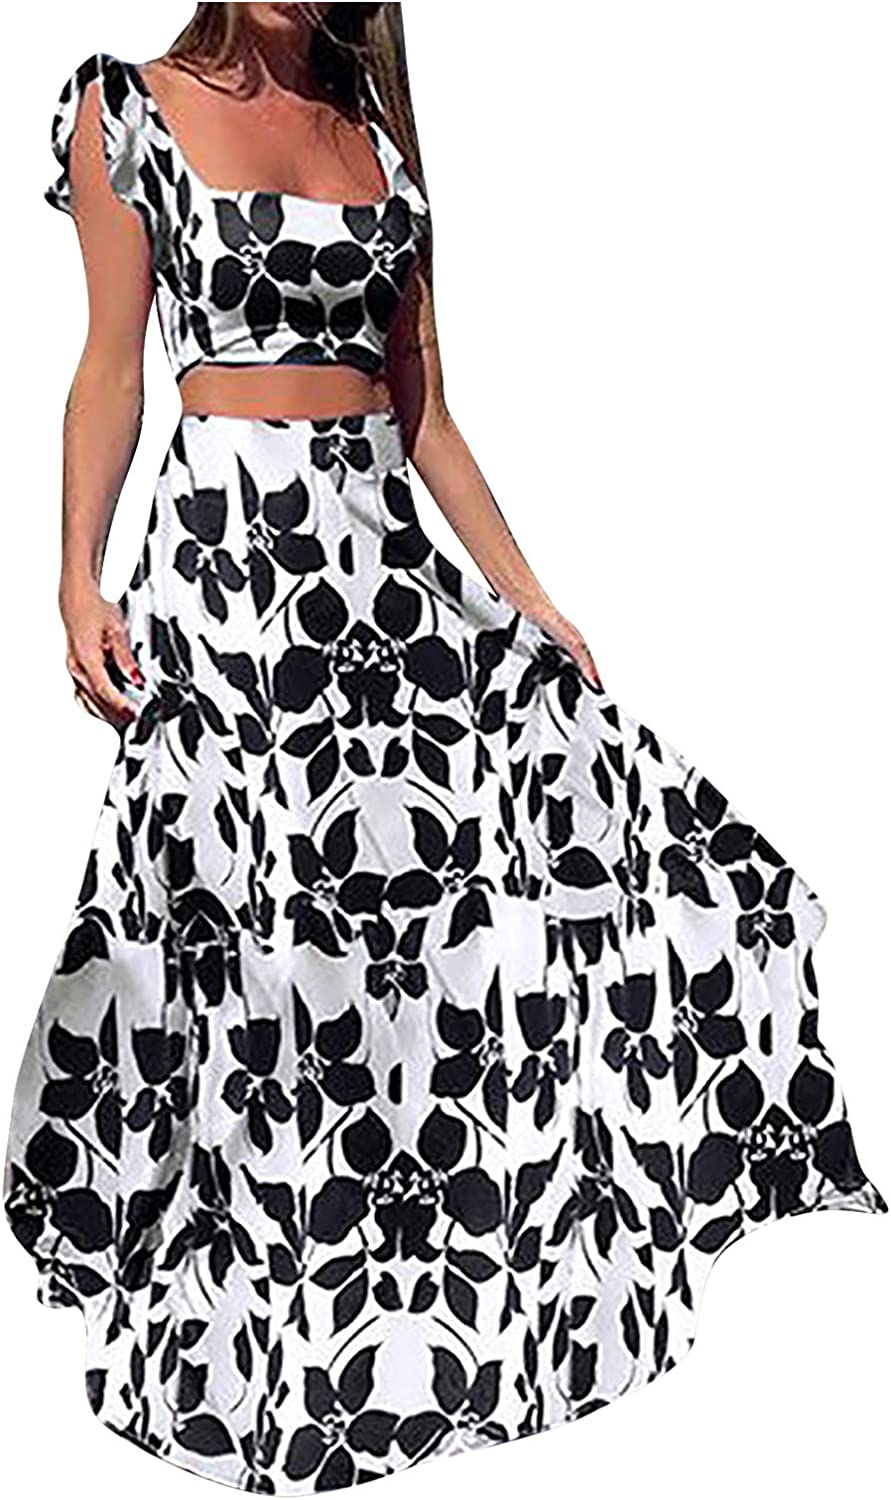 Gyouanime Womens Summer Dresses Sleeveless Tops Challenge the lowest price T Skirt Tube Chicago Mall and